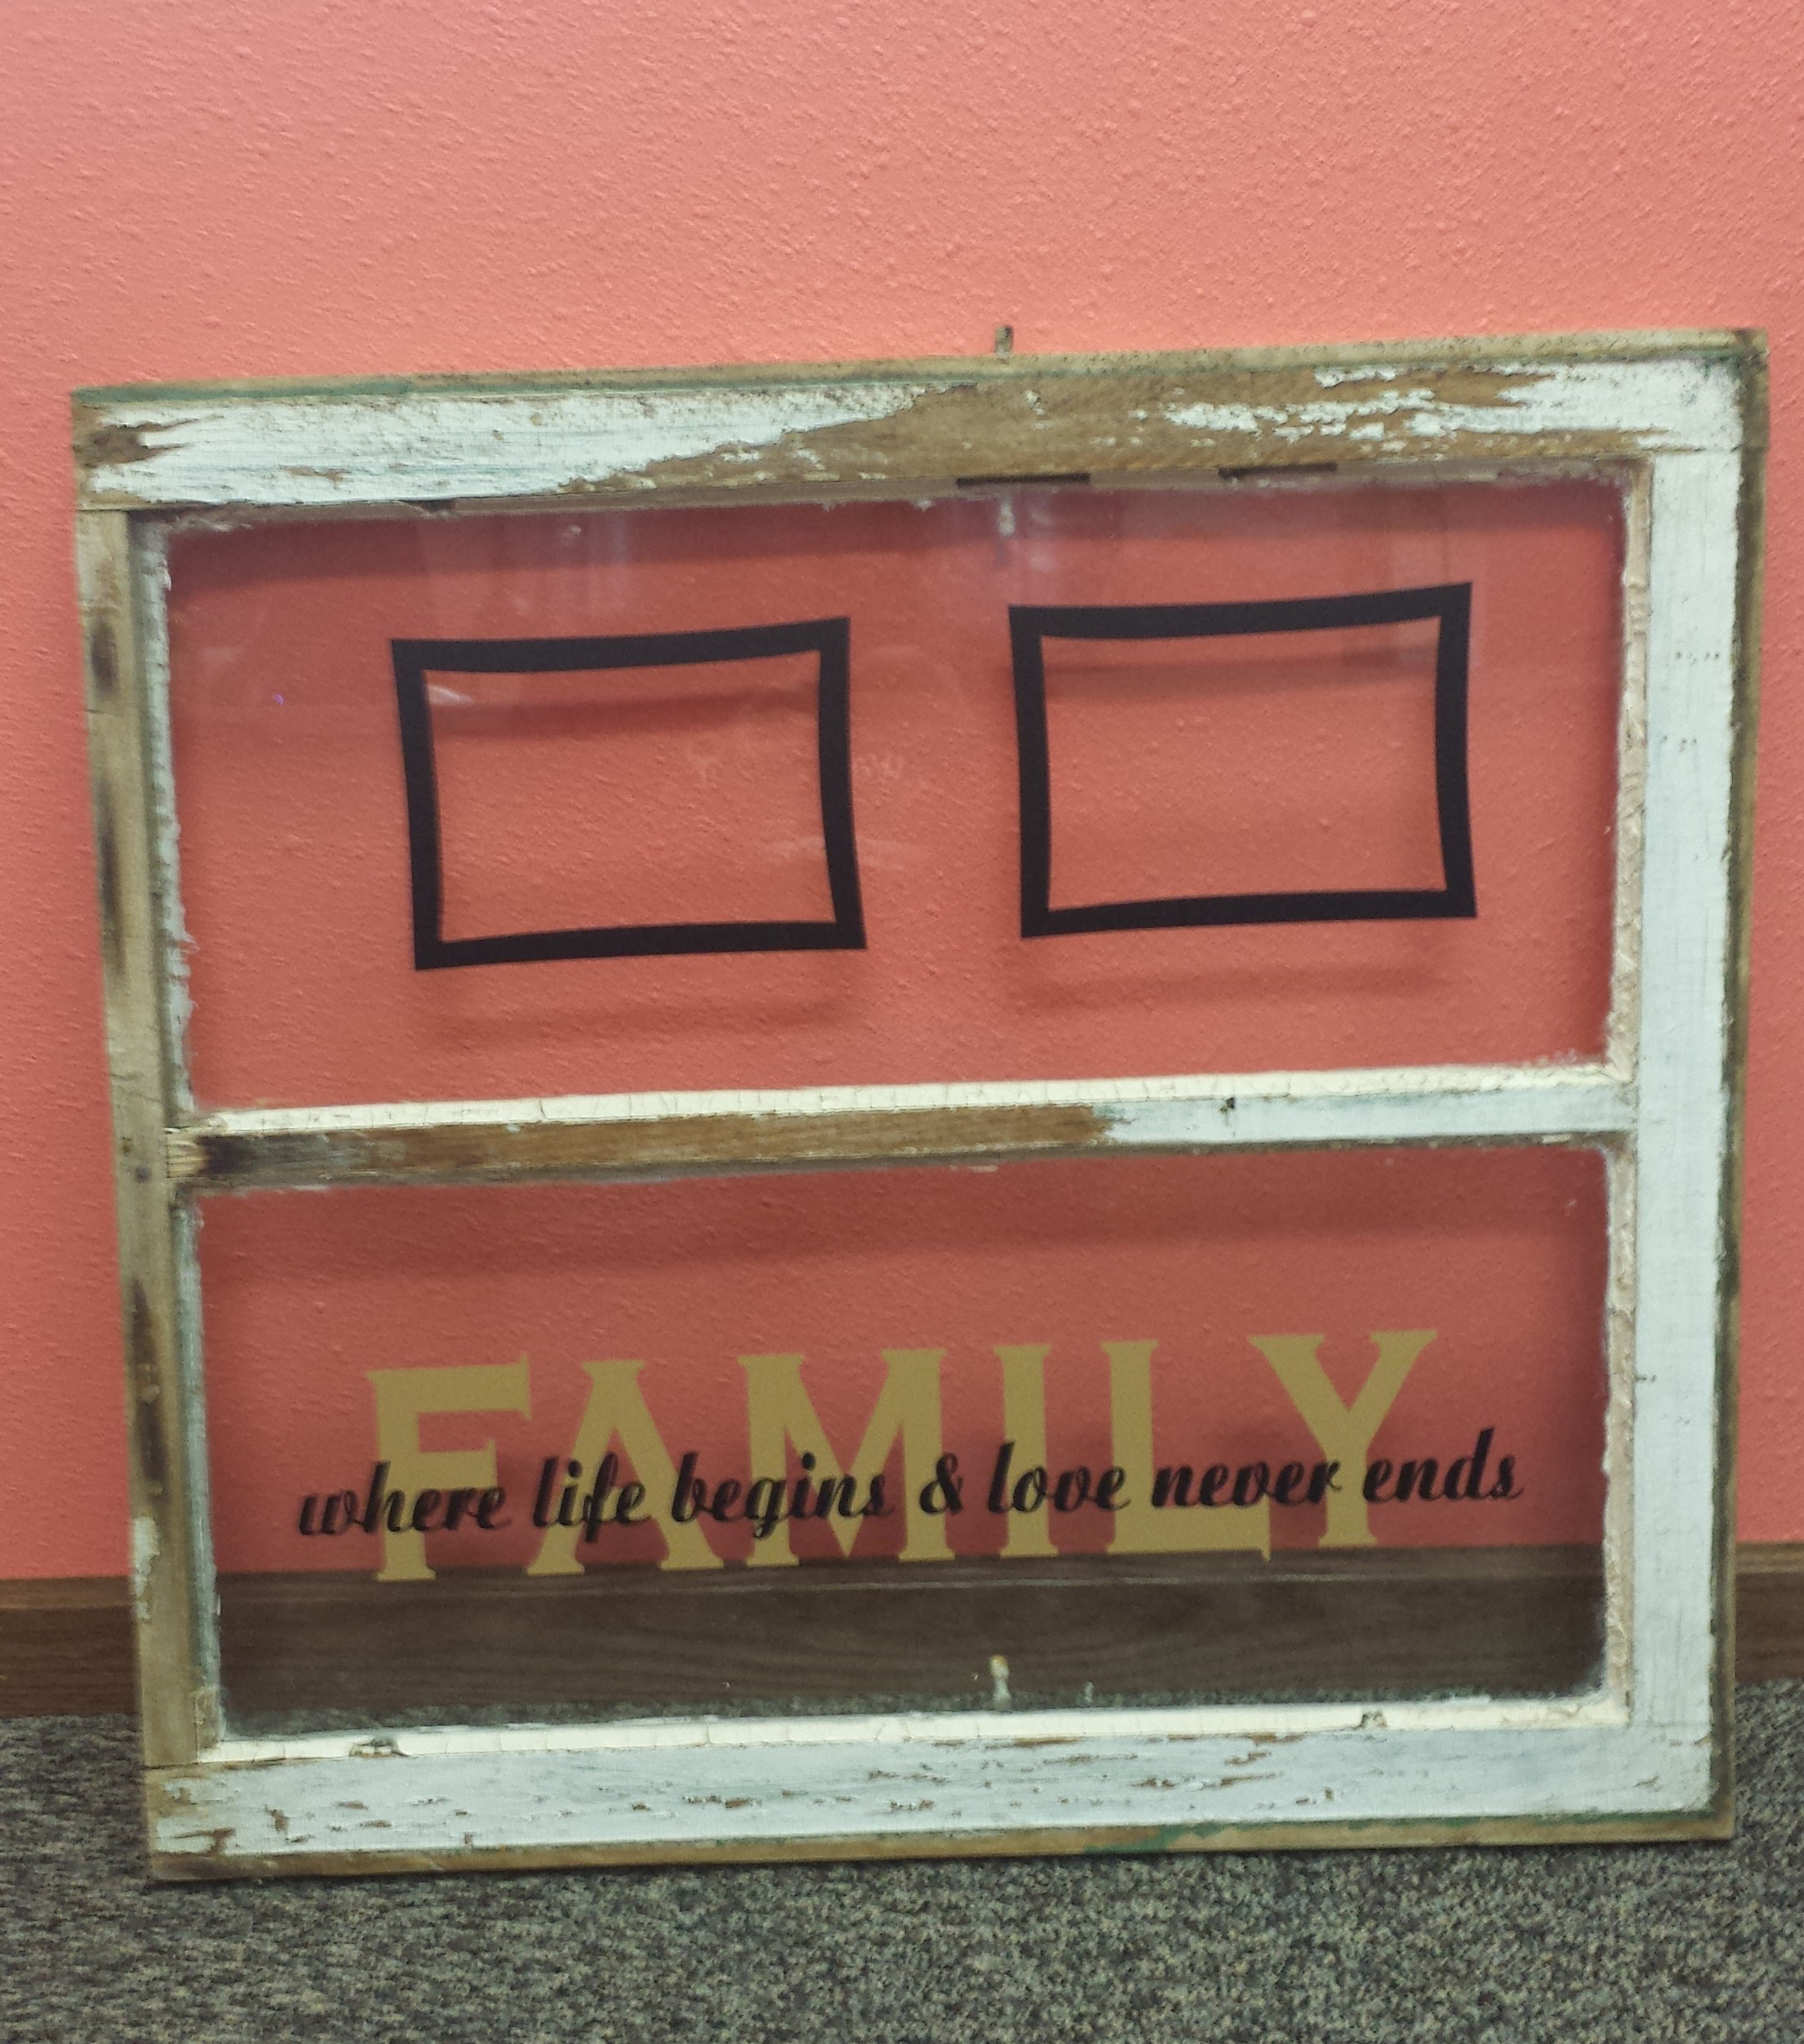 2 color family decal quote overlapped on old window glass